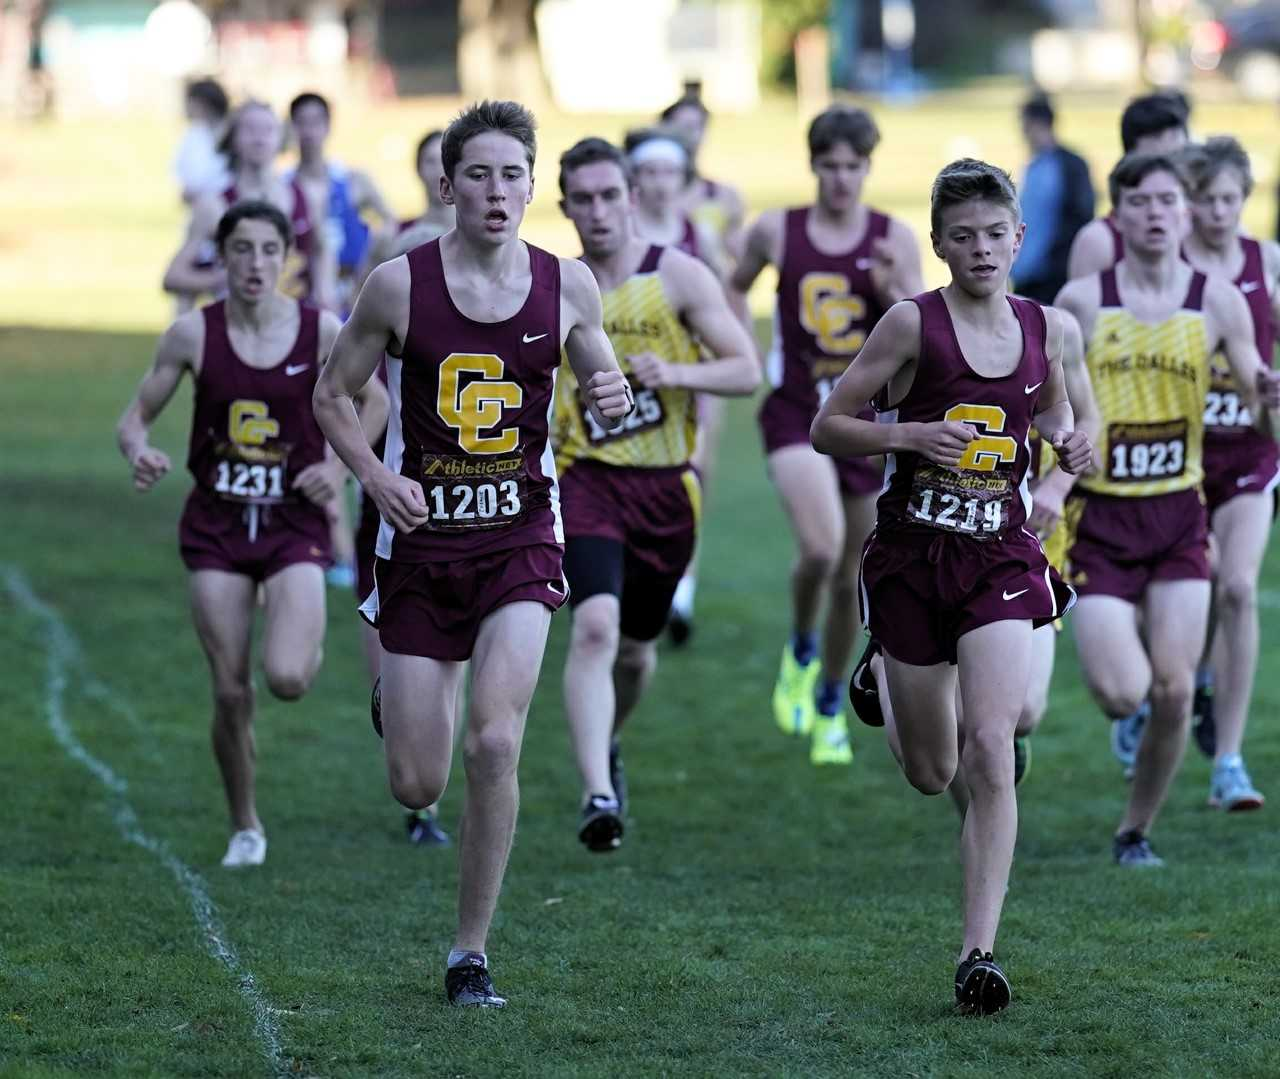 Central Catholic edged Clackamas by two points to win the Mt. Hood Conference district meet. (Photo by Jon Olson)